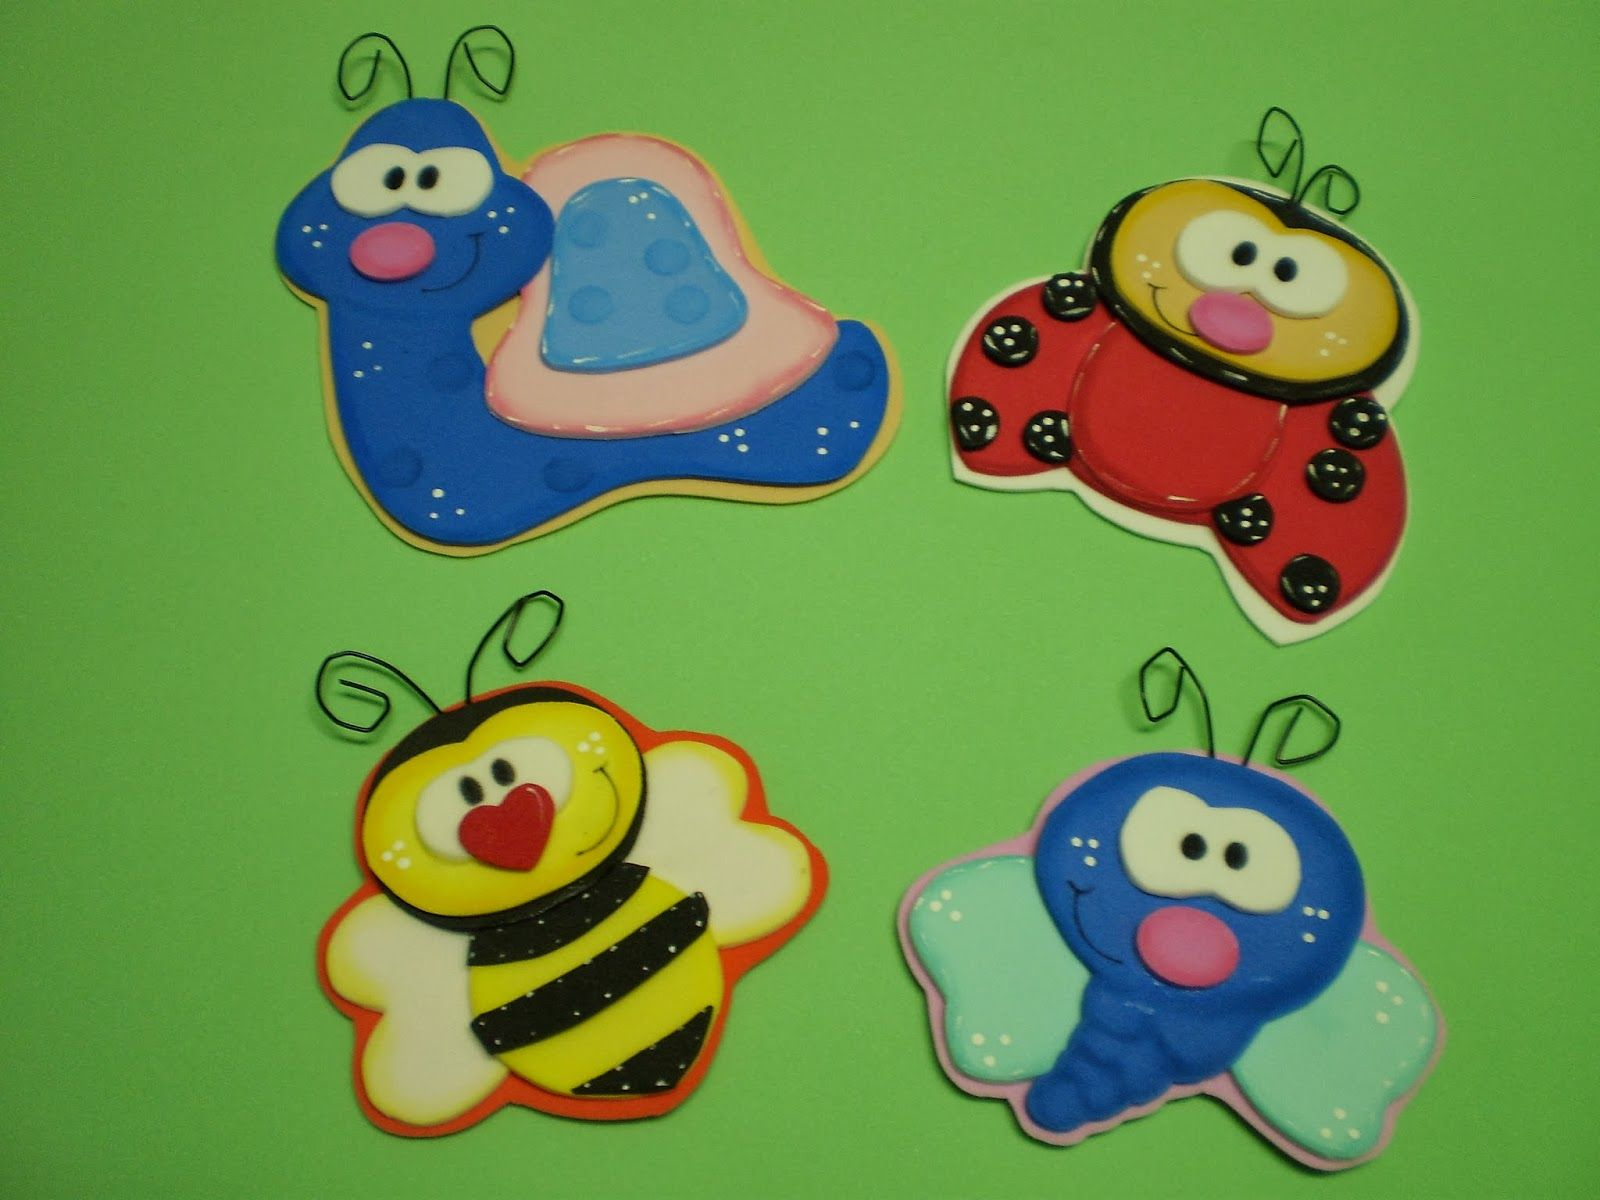 Bichinhos Em Eva ~ Bichinhos de jardim Moldes diversos  Pinterest Ideas para, Foam crafts and Animal patterns